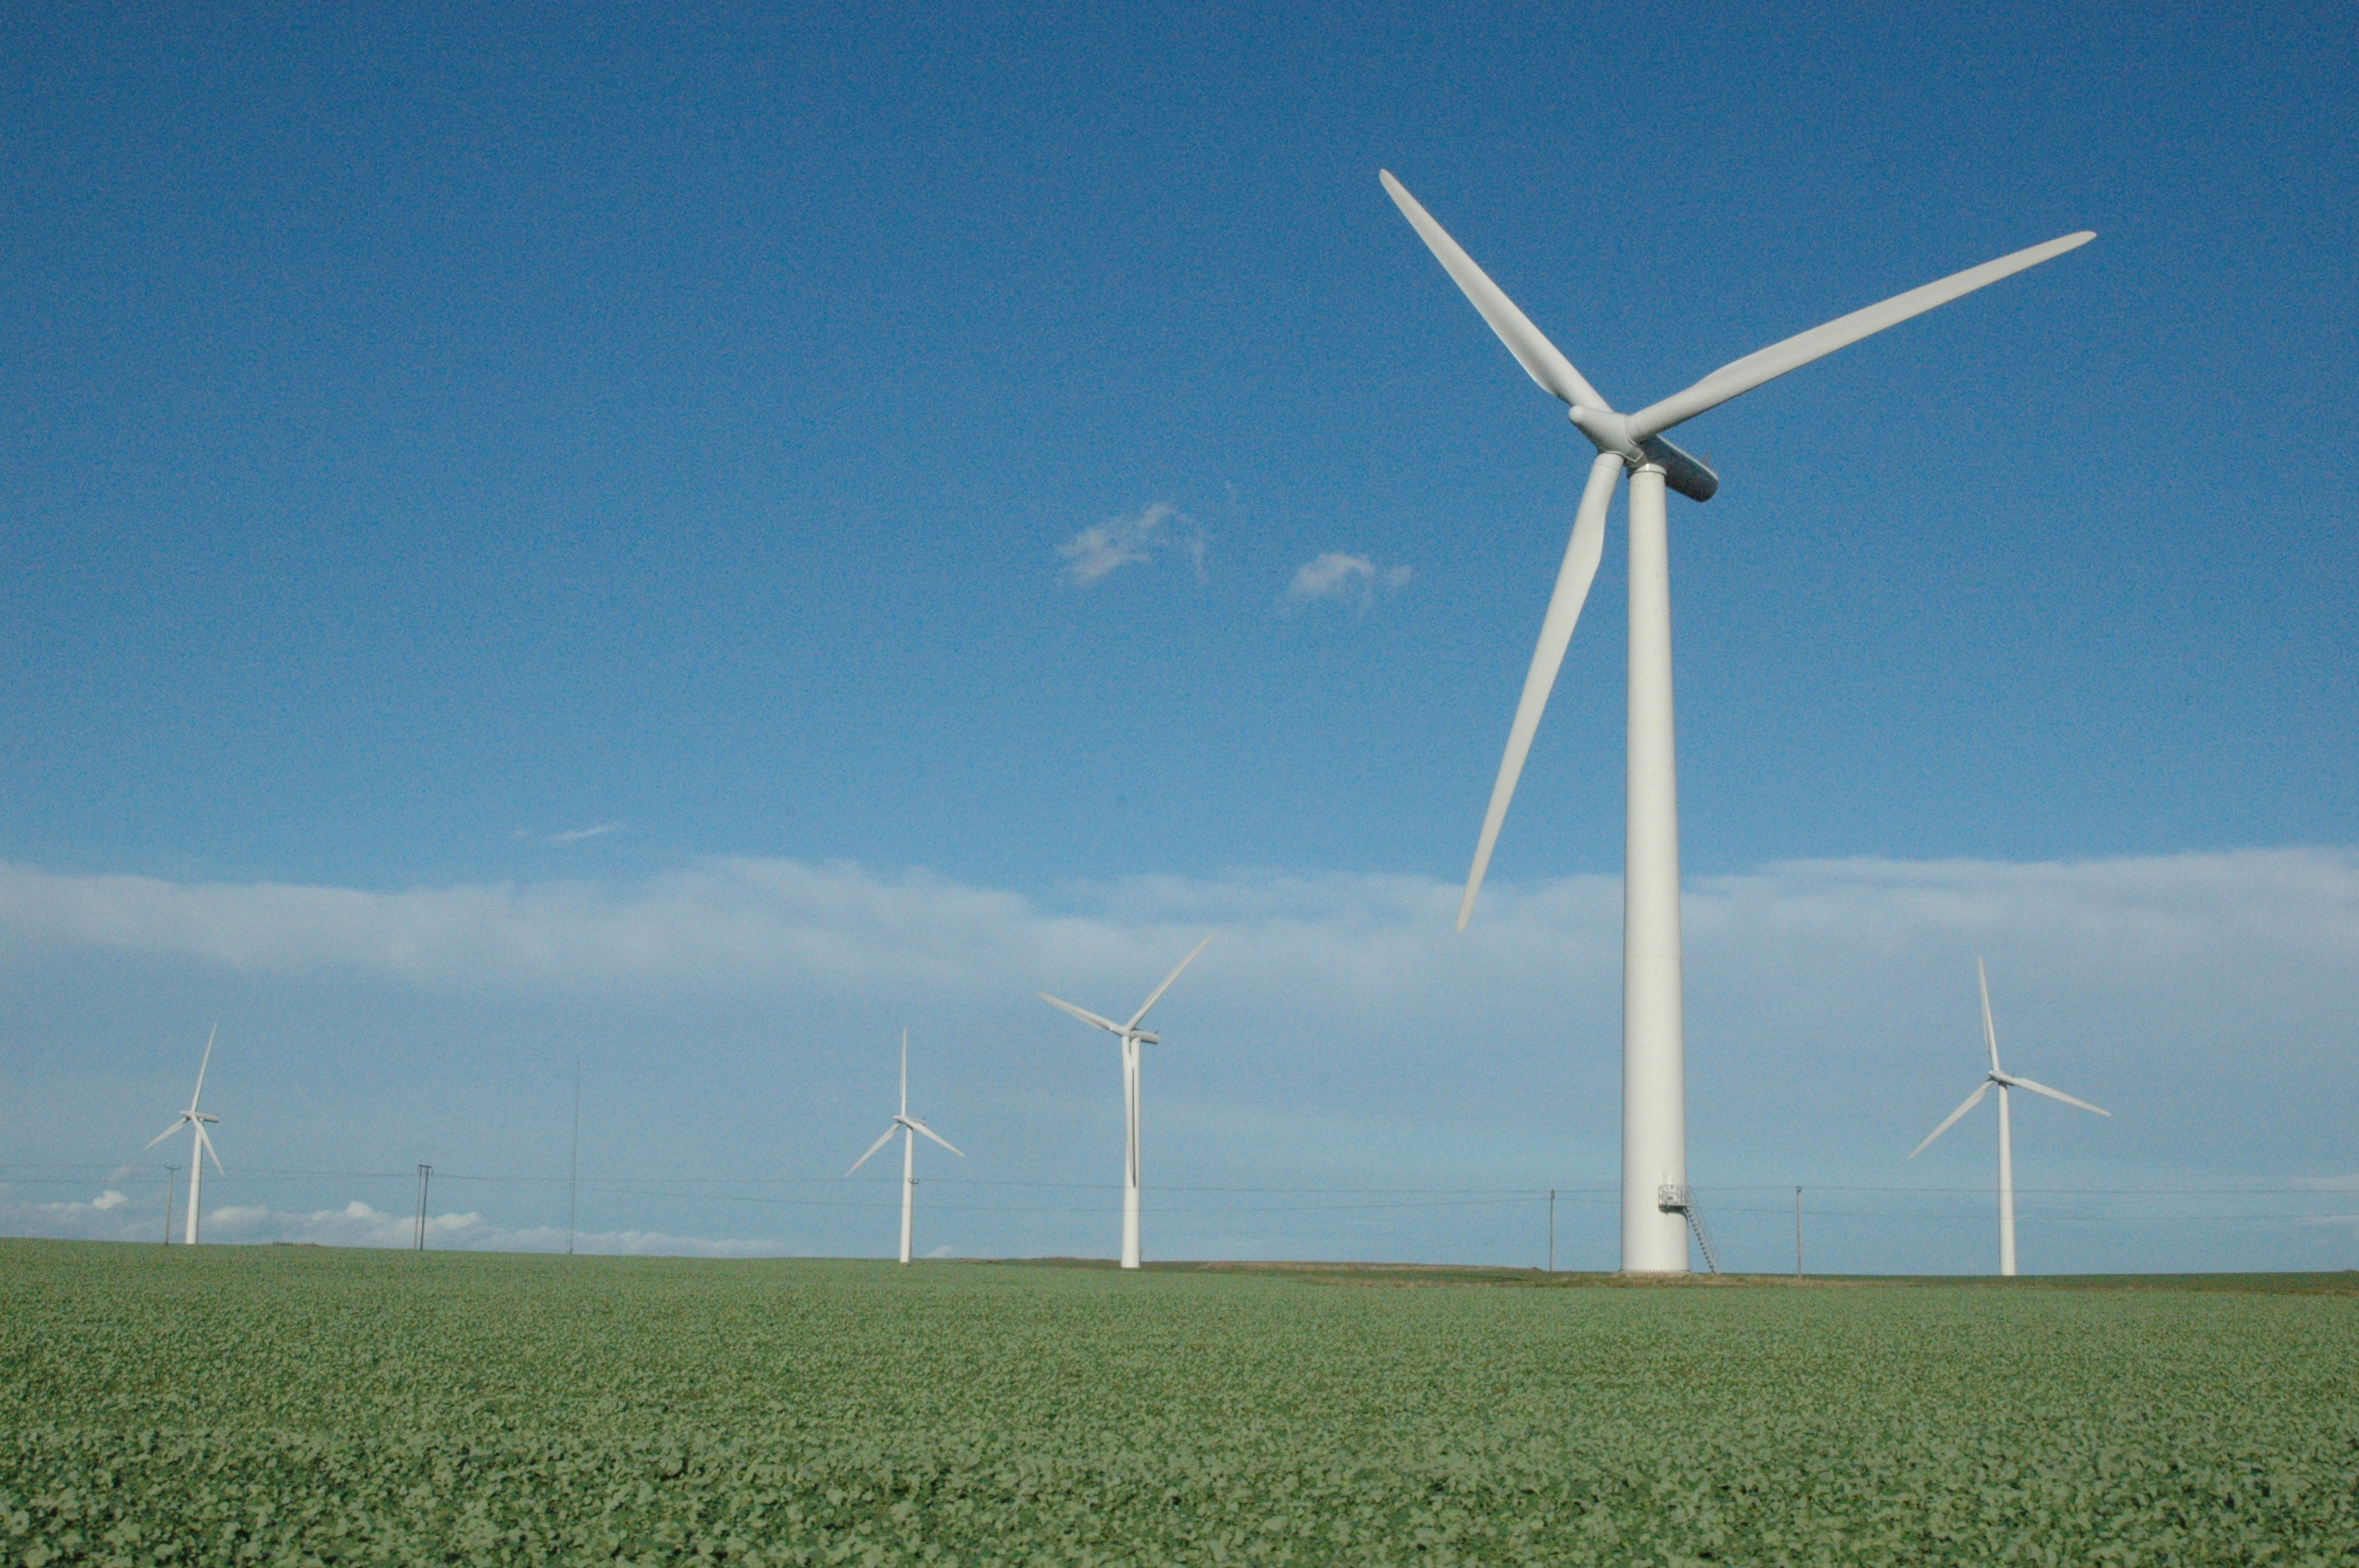 File:Wind turbine Holderness.jpg - Wikimedia Commons